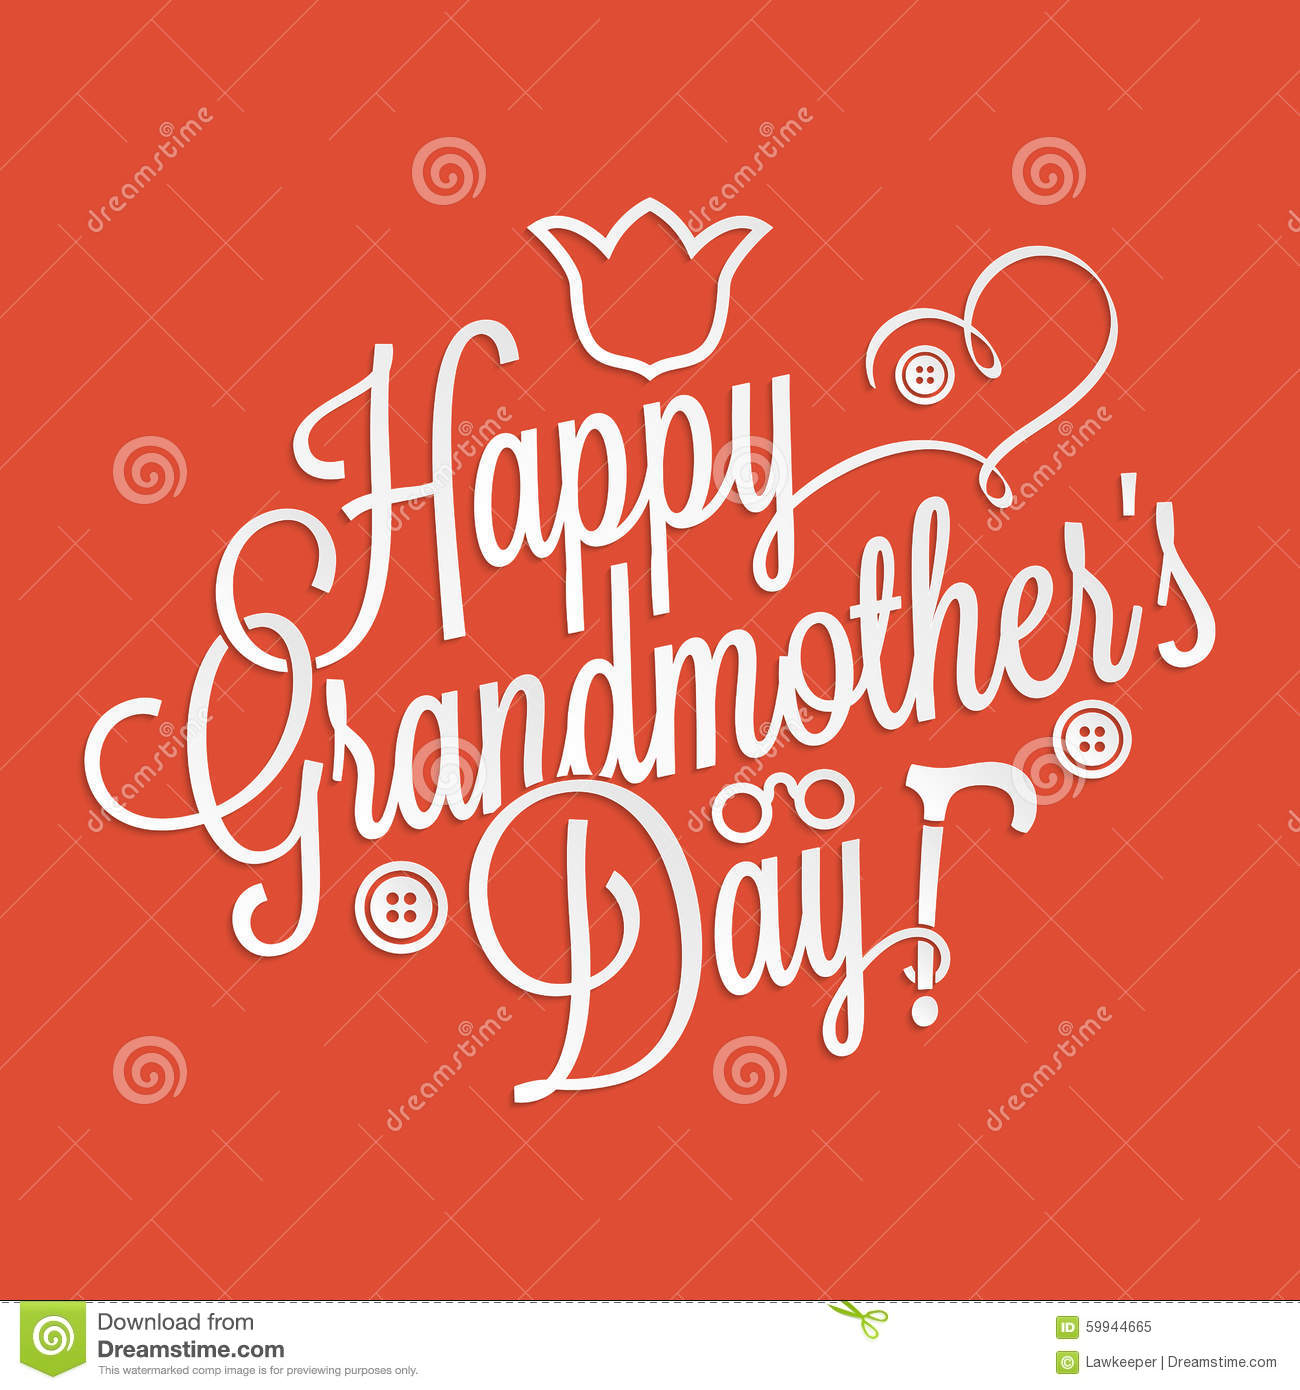 Happy Grandmother's Day Lettering Stock Vector - Image: 59944665